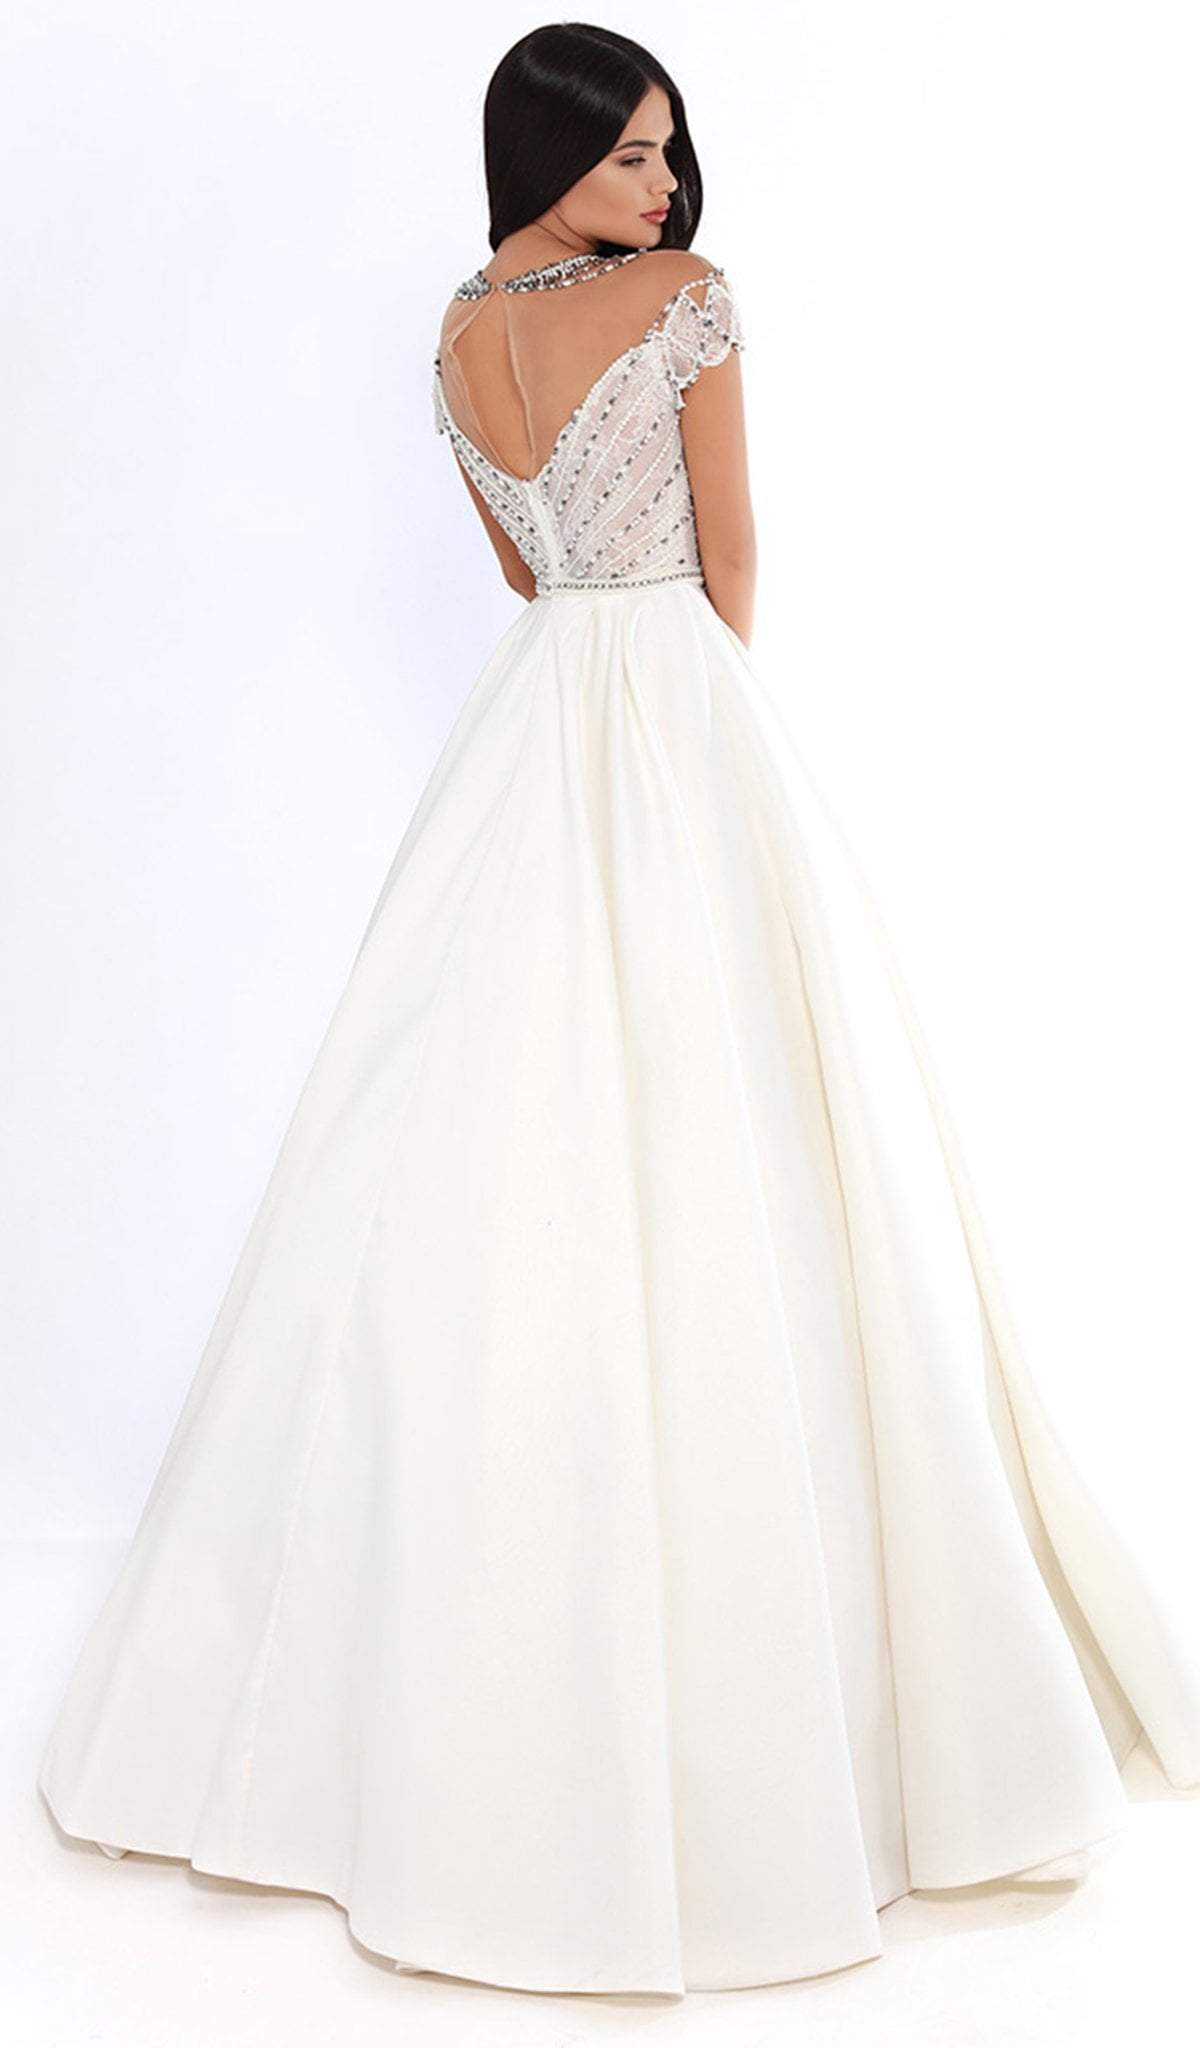 Tarik Ediz - 93737 Embellished High Neck Ballgown In White